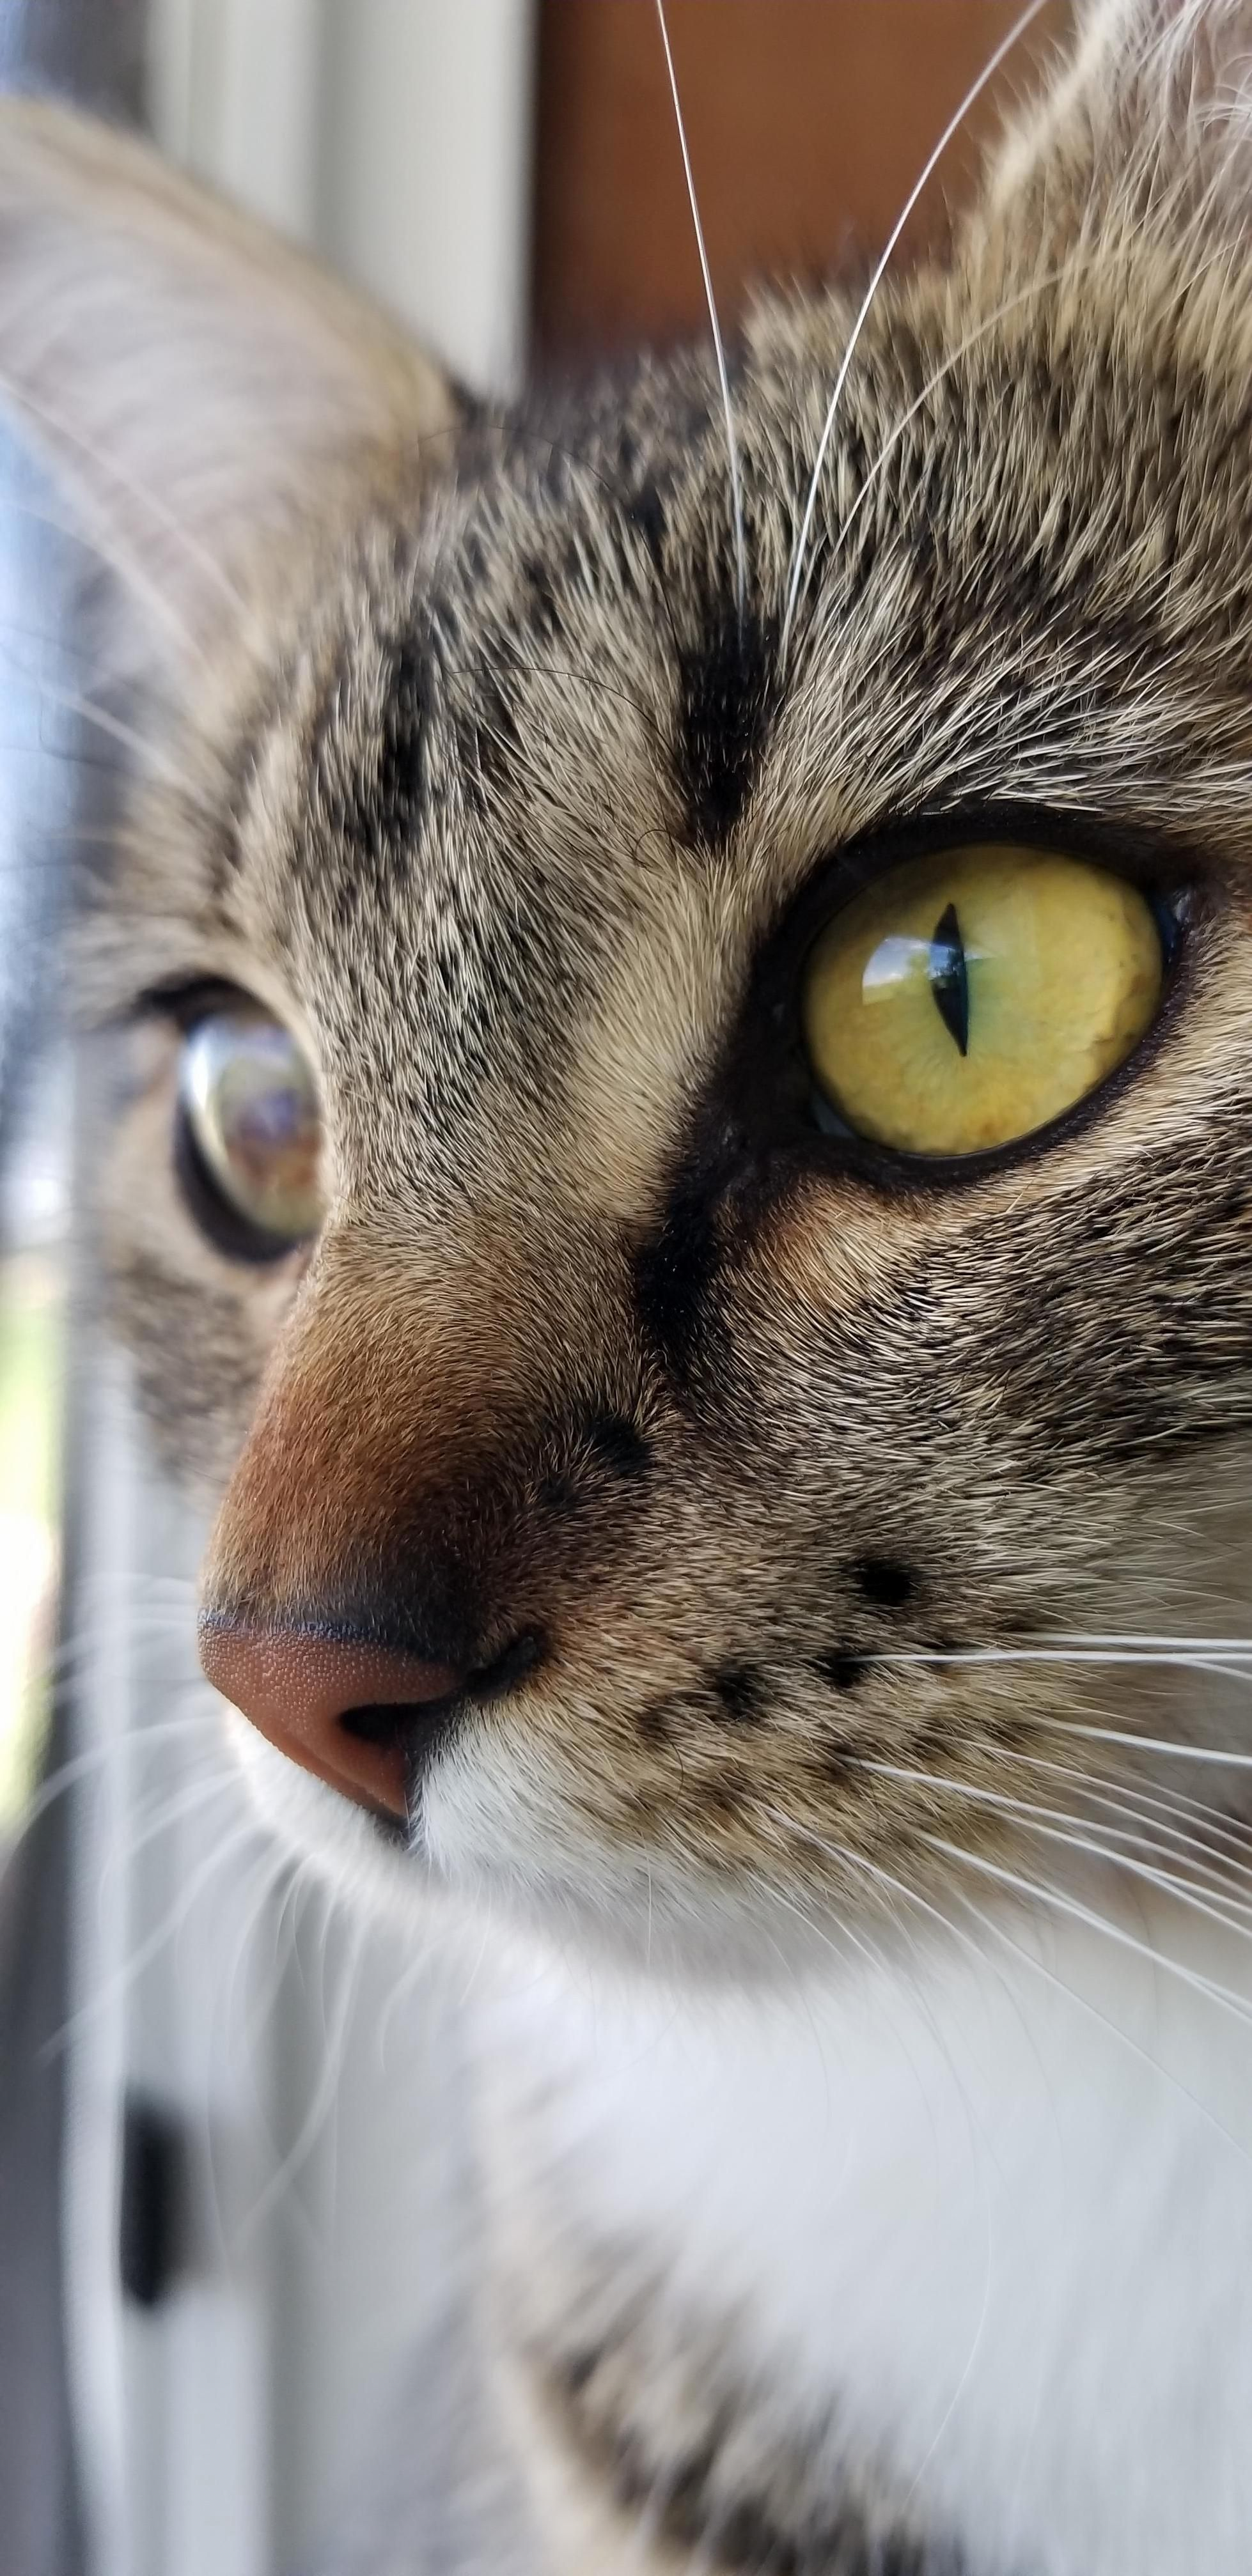 Might Only Have One Good Eye But She Is Quite The Hunter Cute Cats Hq Pictures Of Cute Cats And Kittens Free Pictures Of Funny Cats And Photo Of Cute